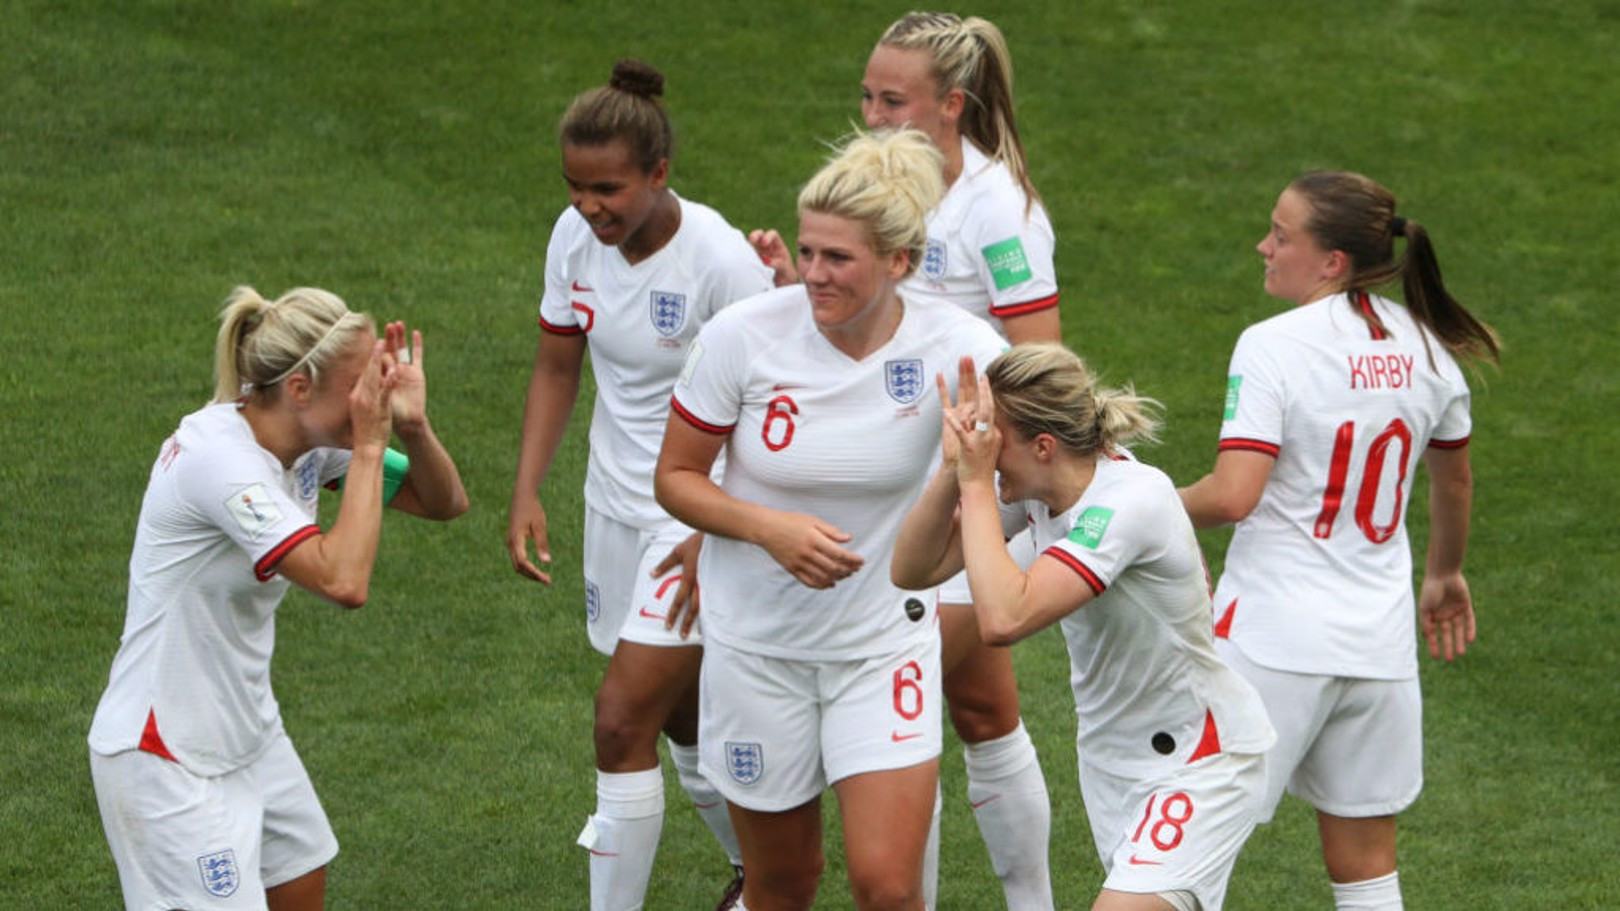 DOUBLE VISION: Steph Houghton (left) copies Ellen White's spectacle celebration after White's strike against Cameroon